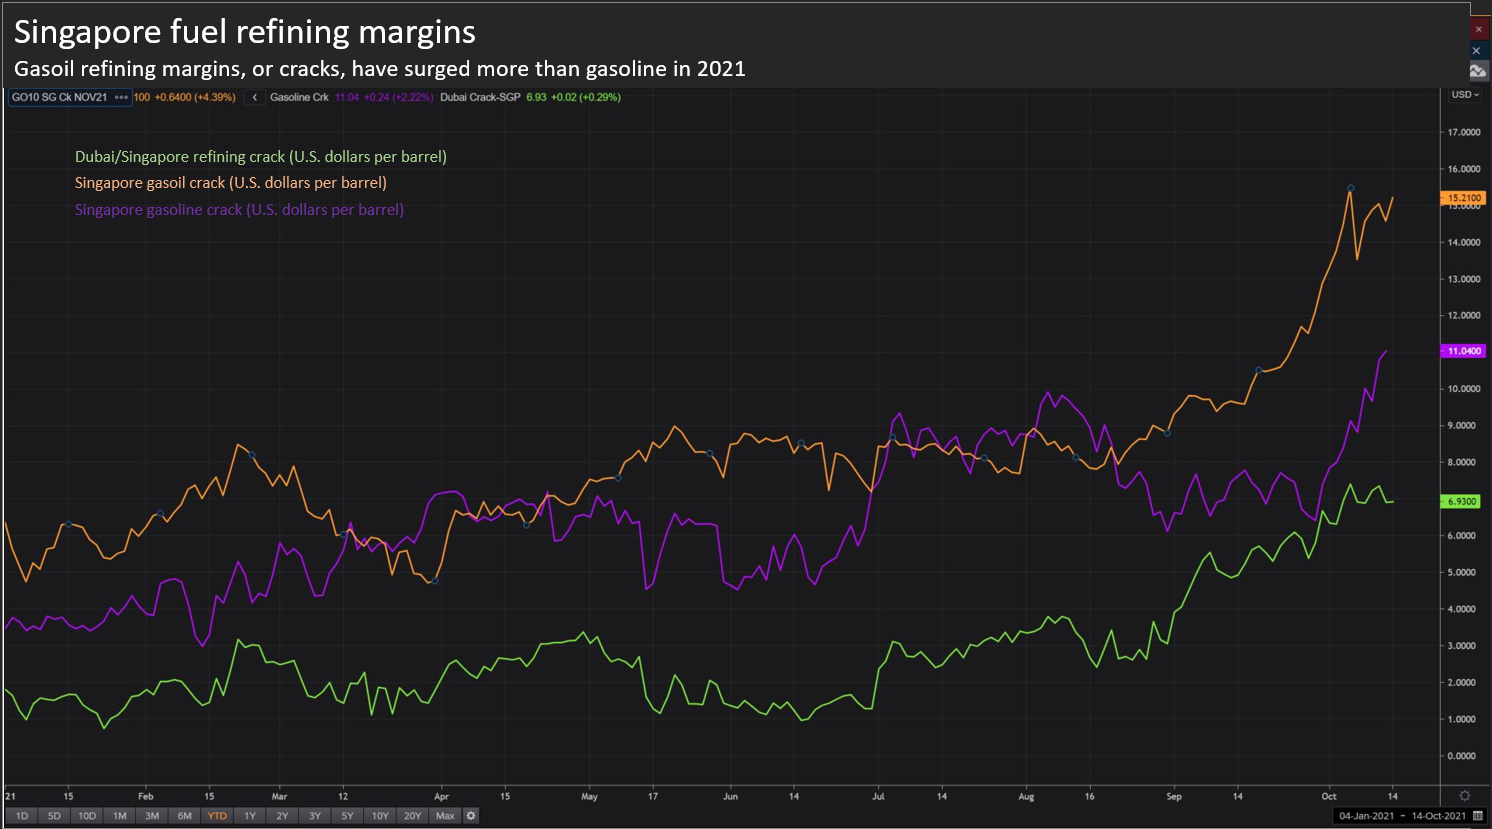 Gasoil refining margins, or cracks, have surged more than gasoline in 2021